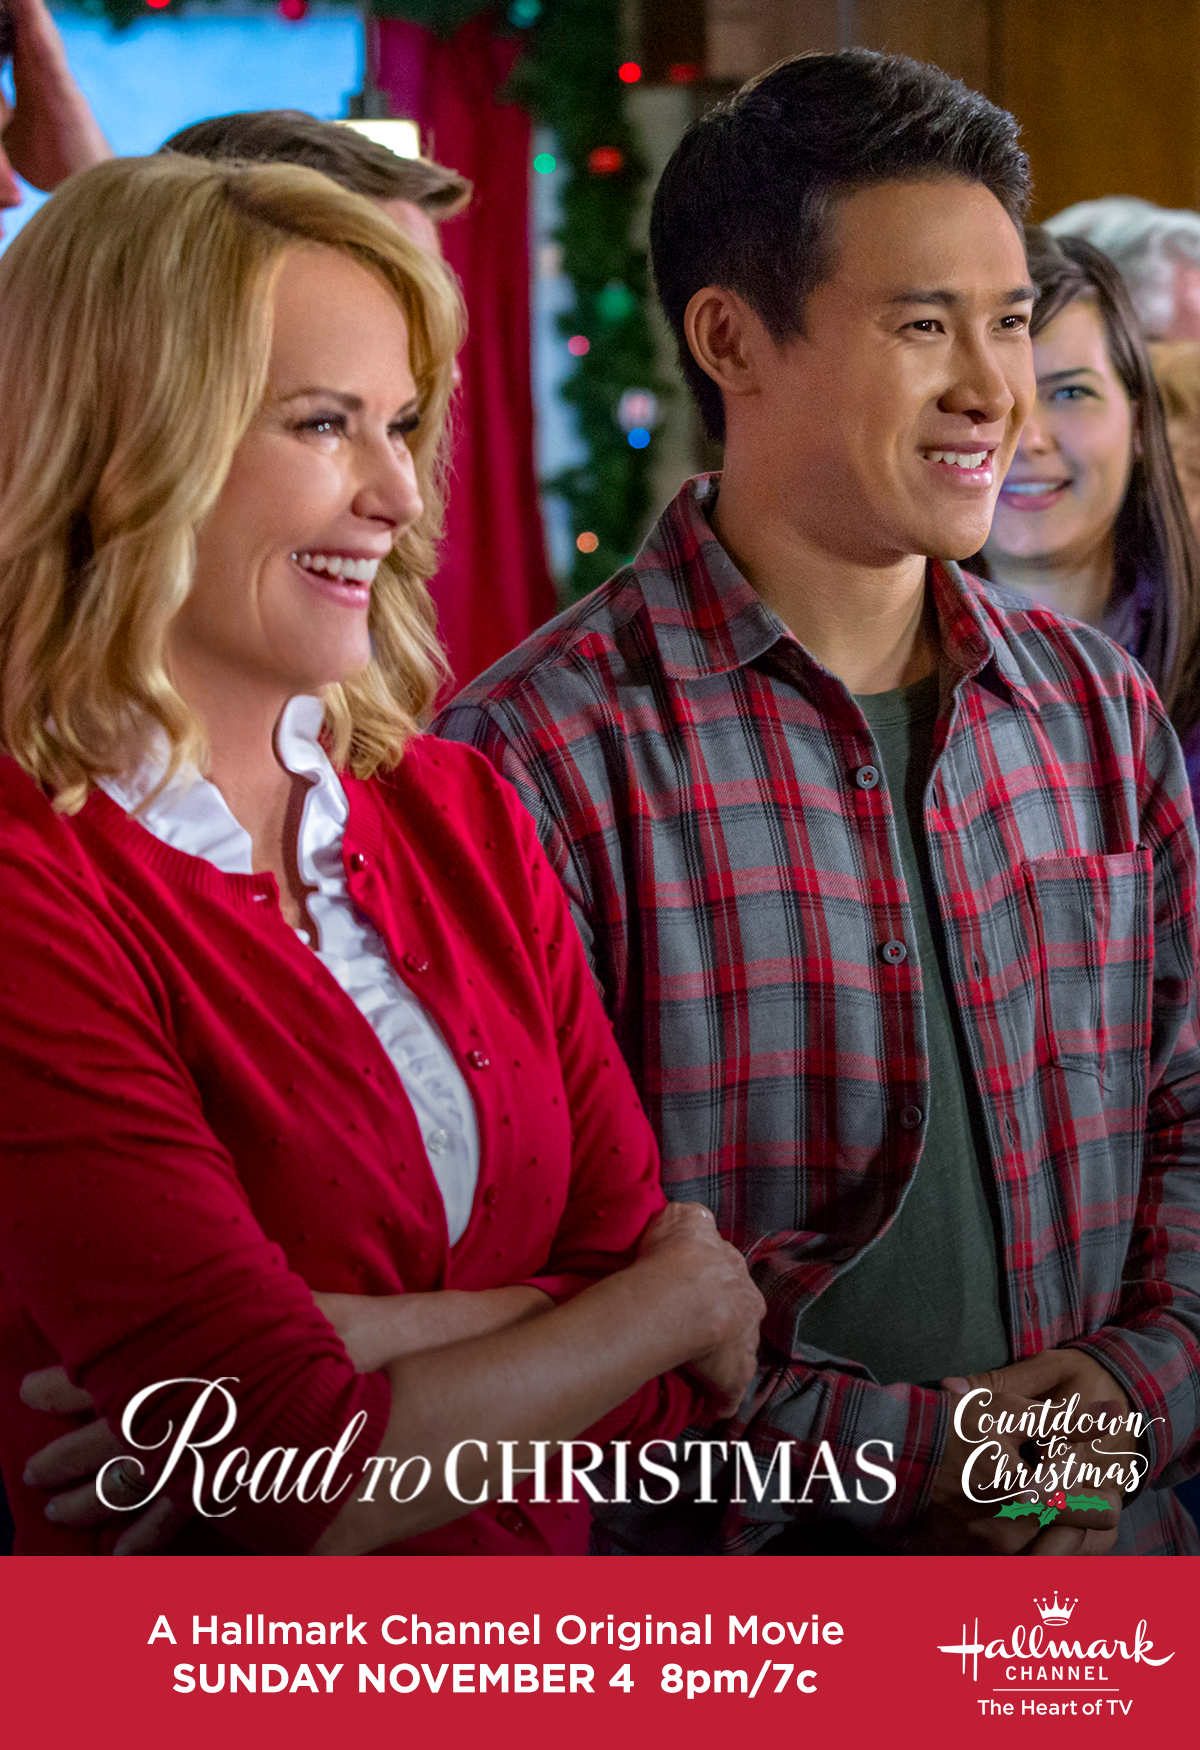 Road To Christmas.What S Got Rebecca Staub And Cardi Wong Smiling About In